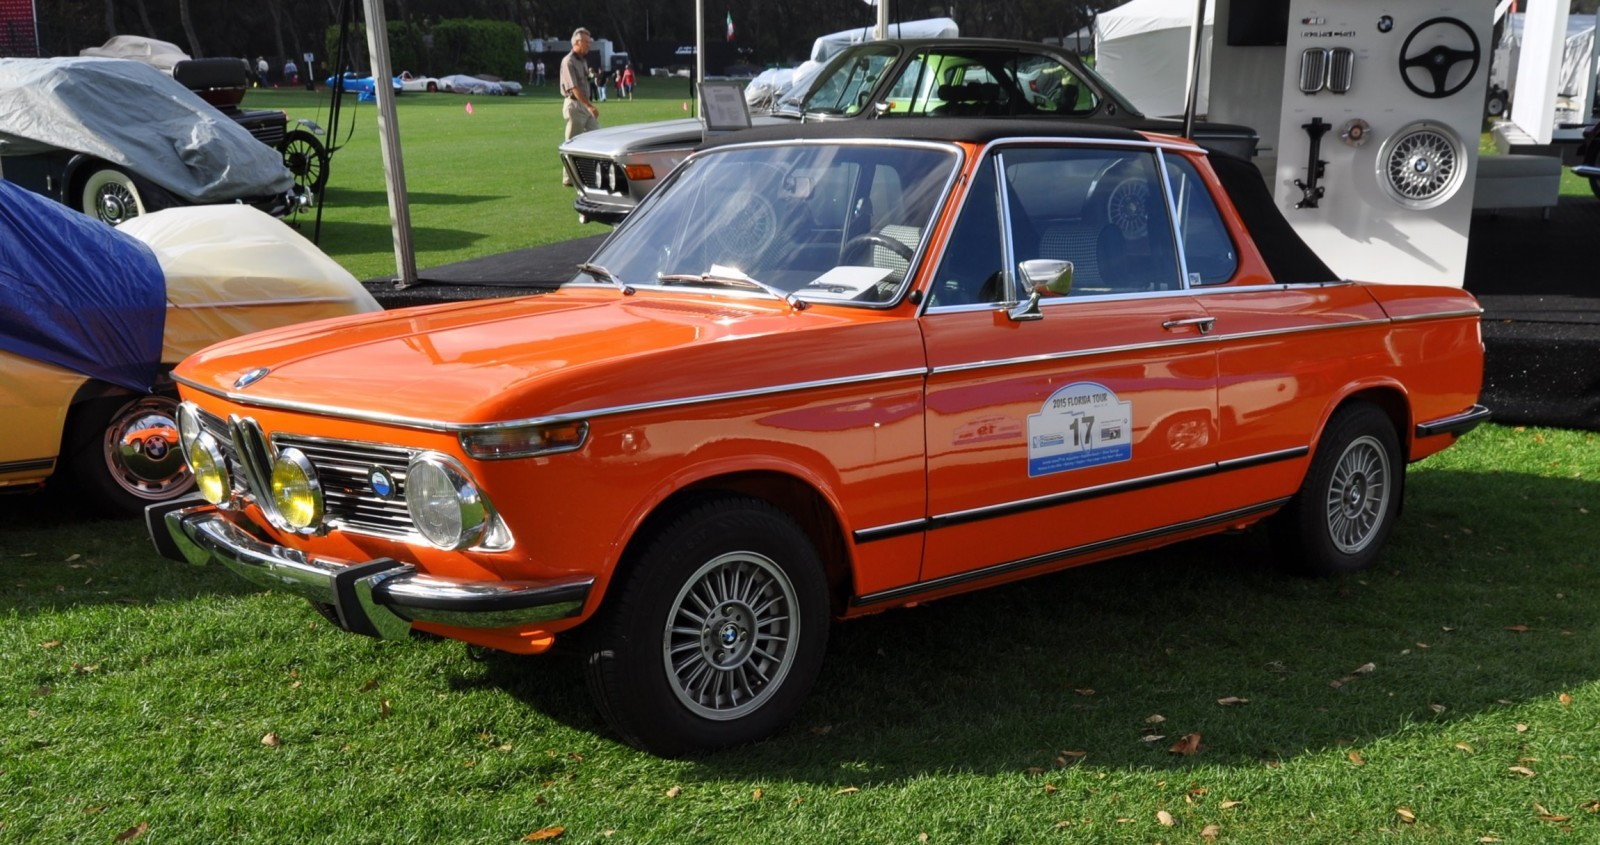 Amelia Island 2015 - BMW Brings 507, M1, CSL and tii To Join 2015 X5 M and 2015 650i M Sport 33